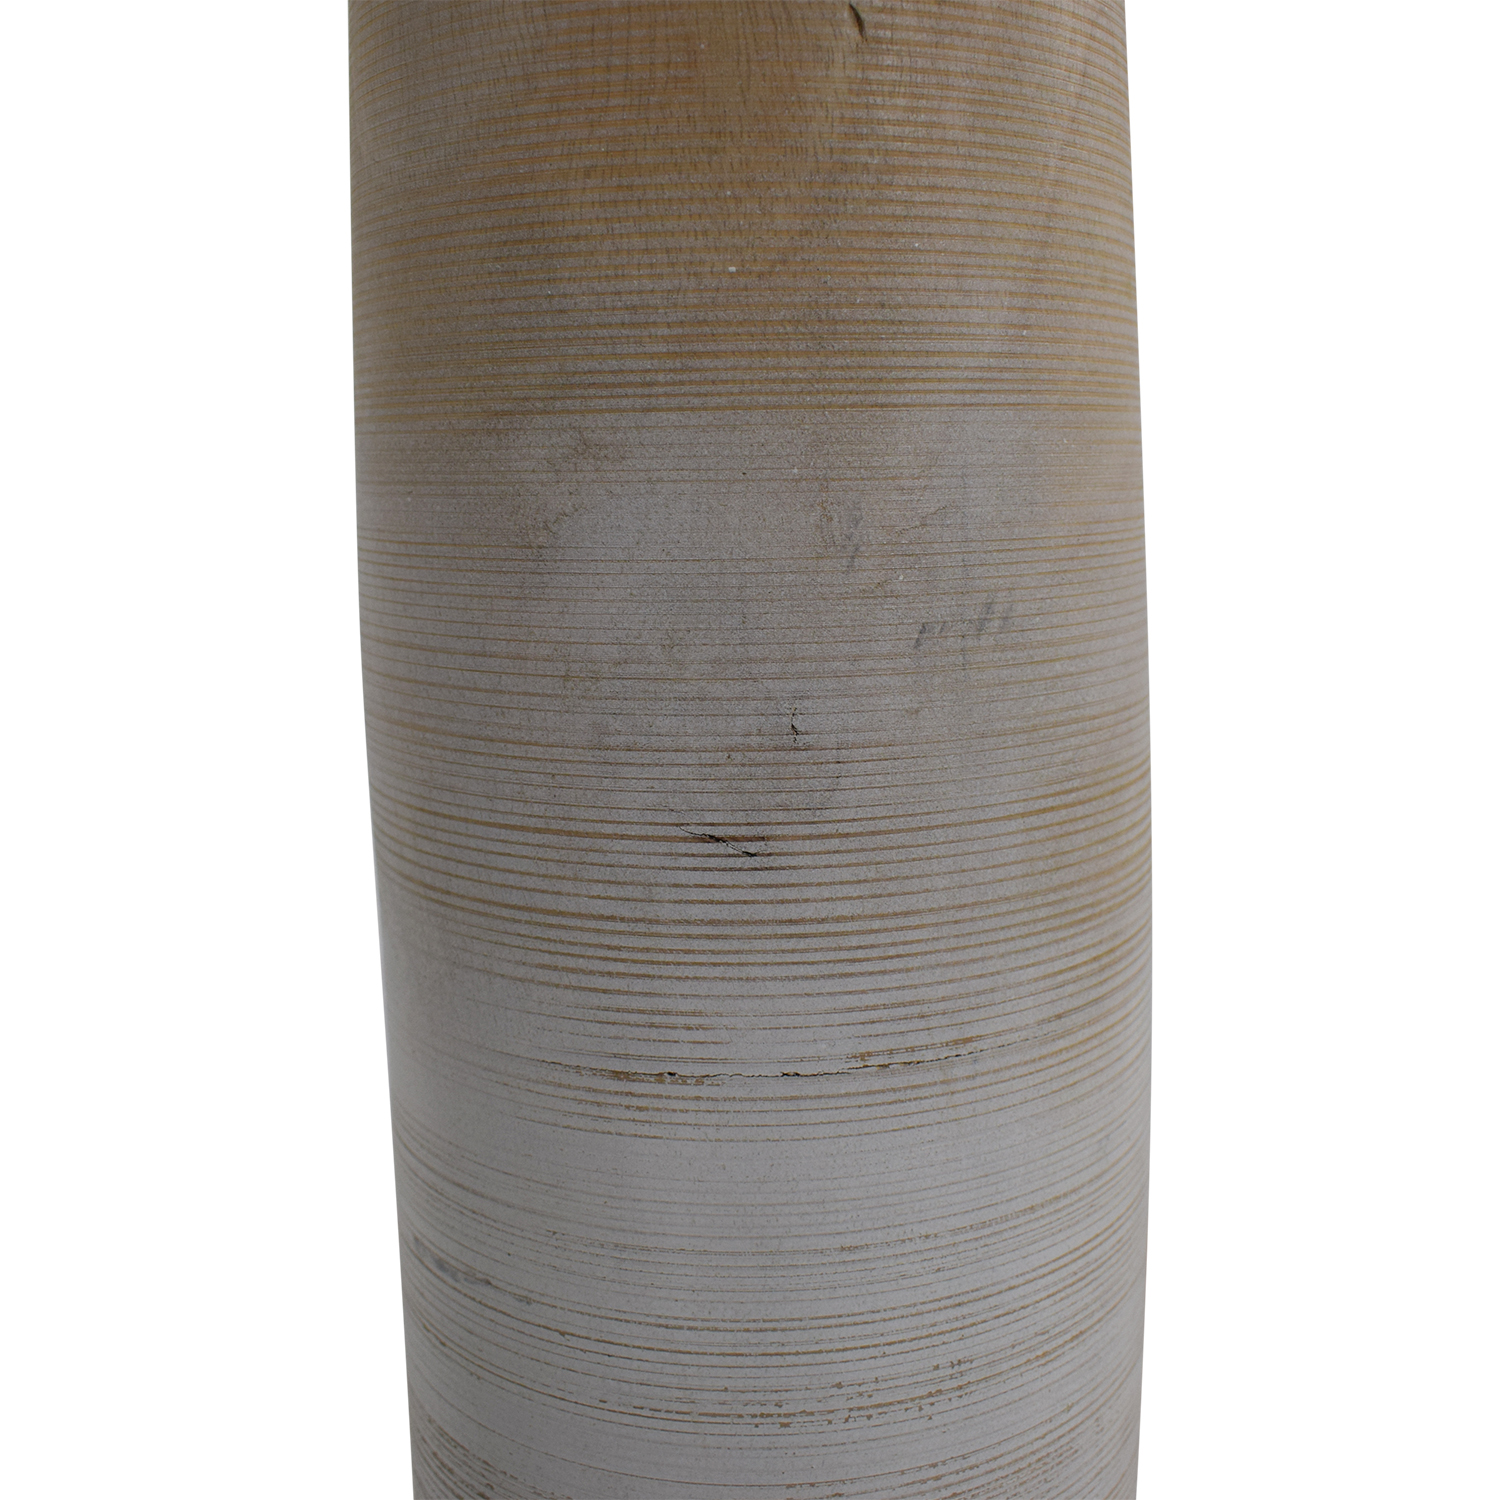 White and Natural Tall Vase used